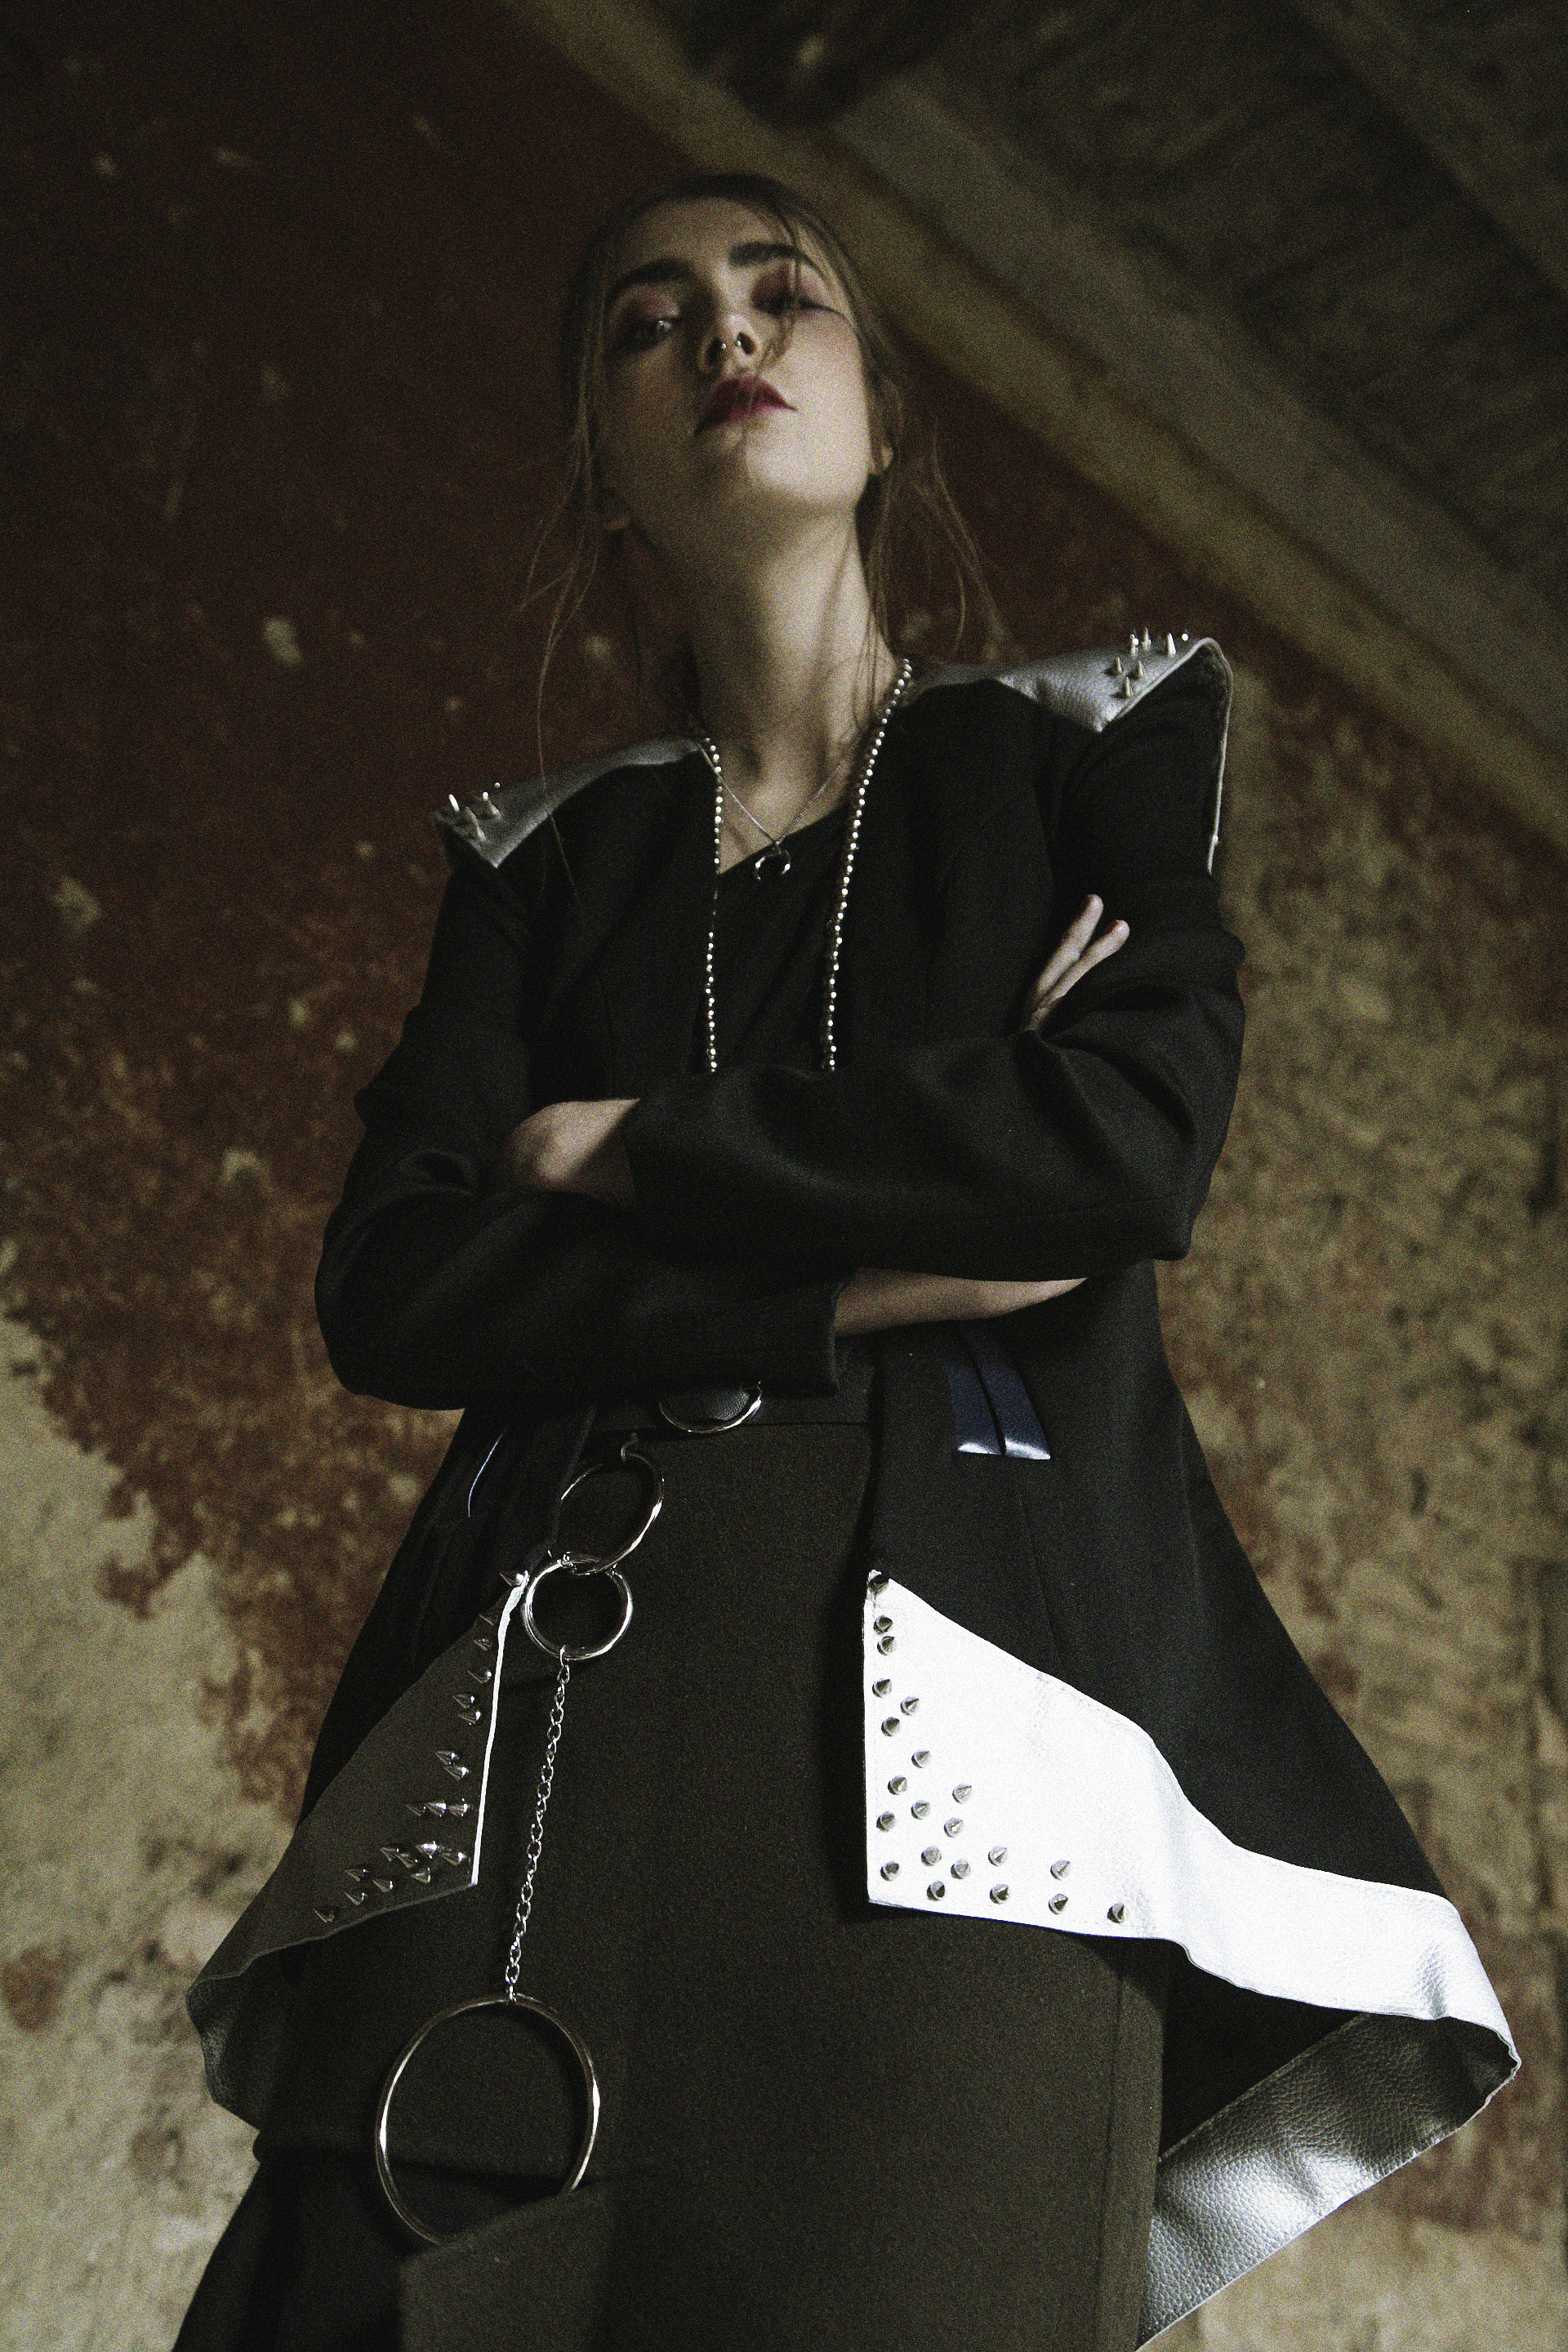 Jessica / Jacket: Sveva Parlato. Top: Lost&Found. Skirt: MM6. Necklaces: H&M and stylist's own. Belt: Topshop.